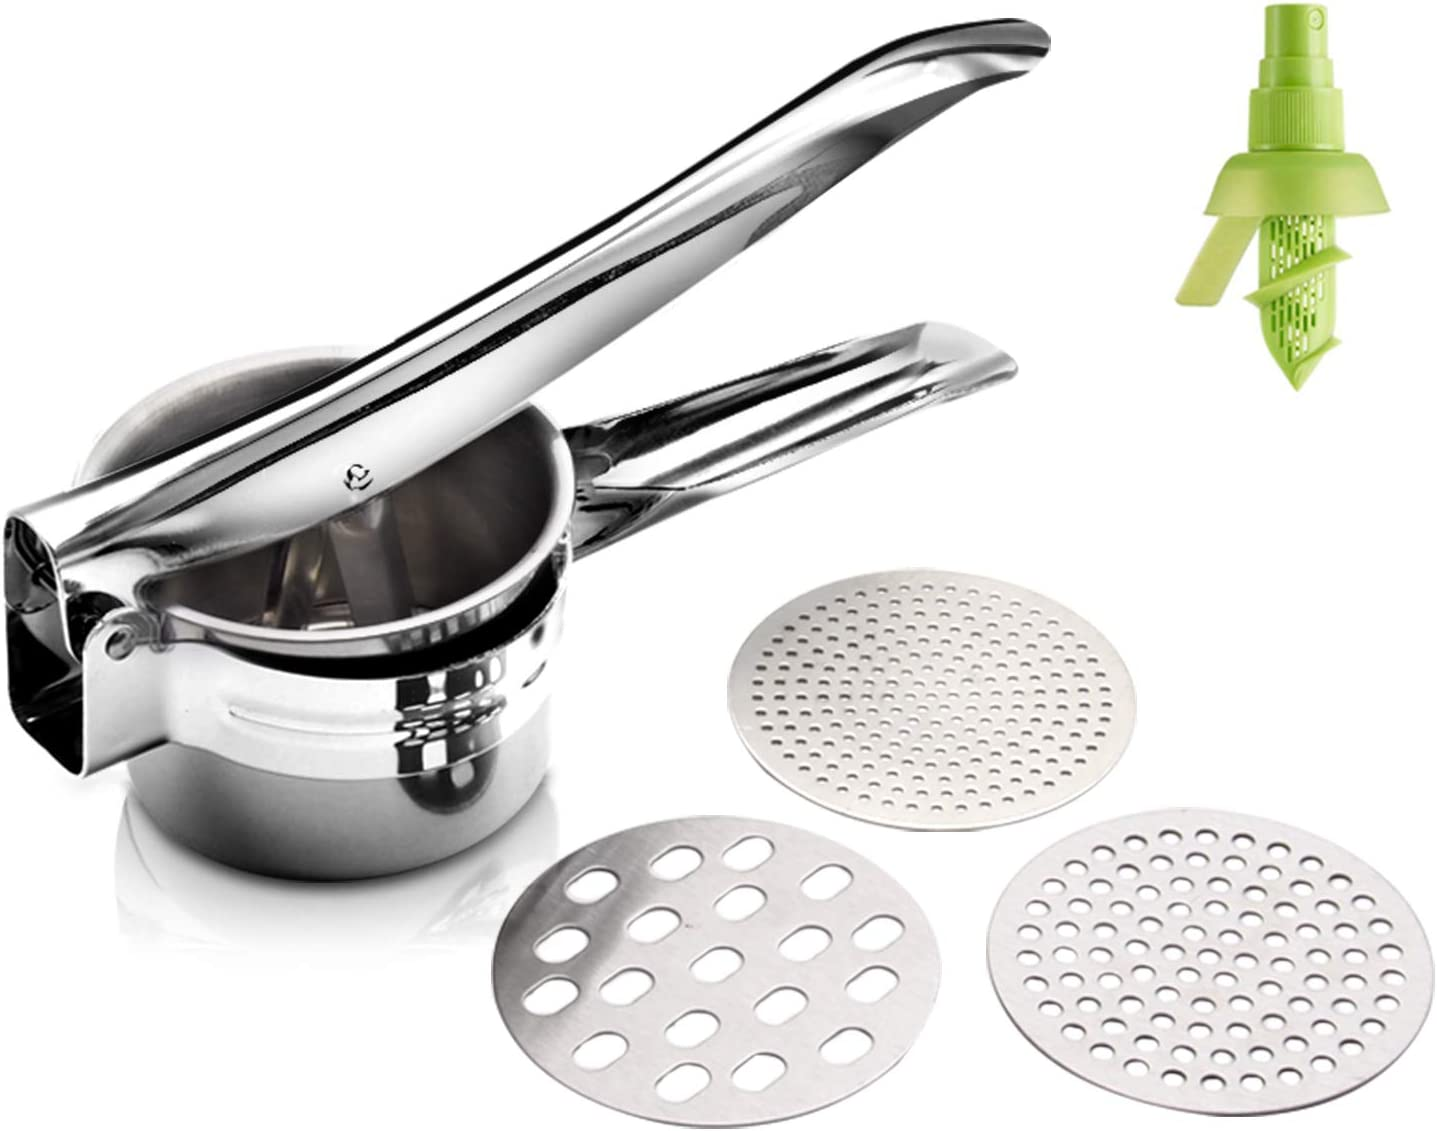 GOGIGI Ricer for Mashed Potatoes Masher Stainless Free shipping on posting reviews Steel Potato Complete Free Shipping M